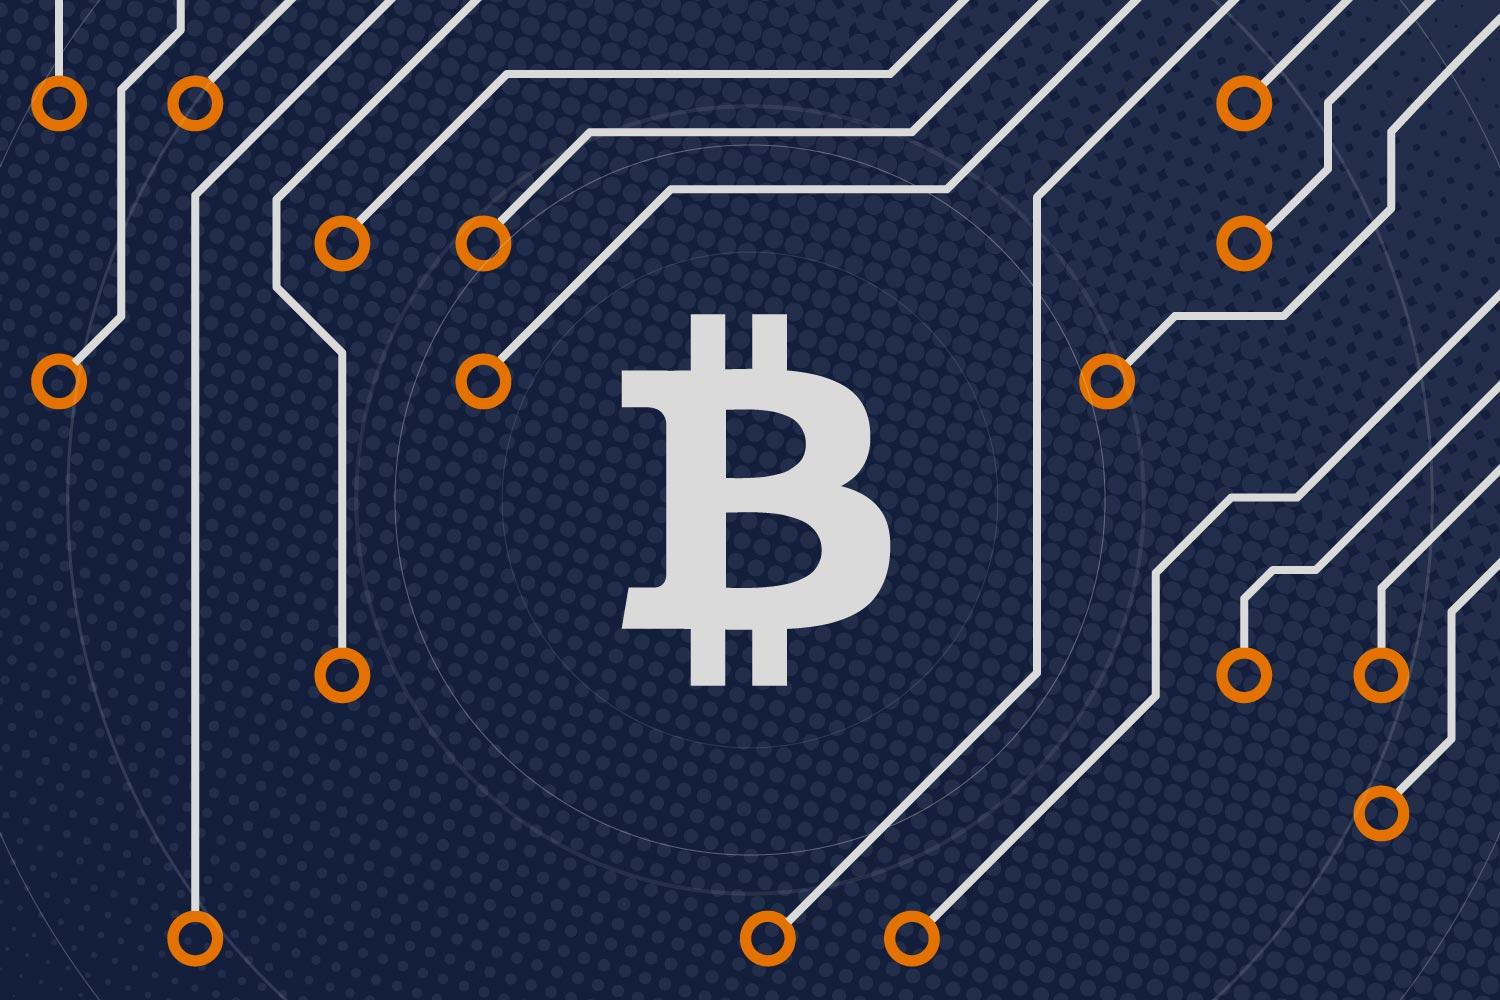 Perfect method to earn or get 1 Free Bitcoin